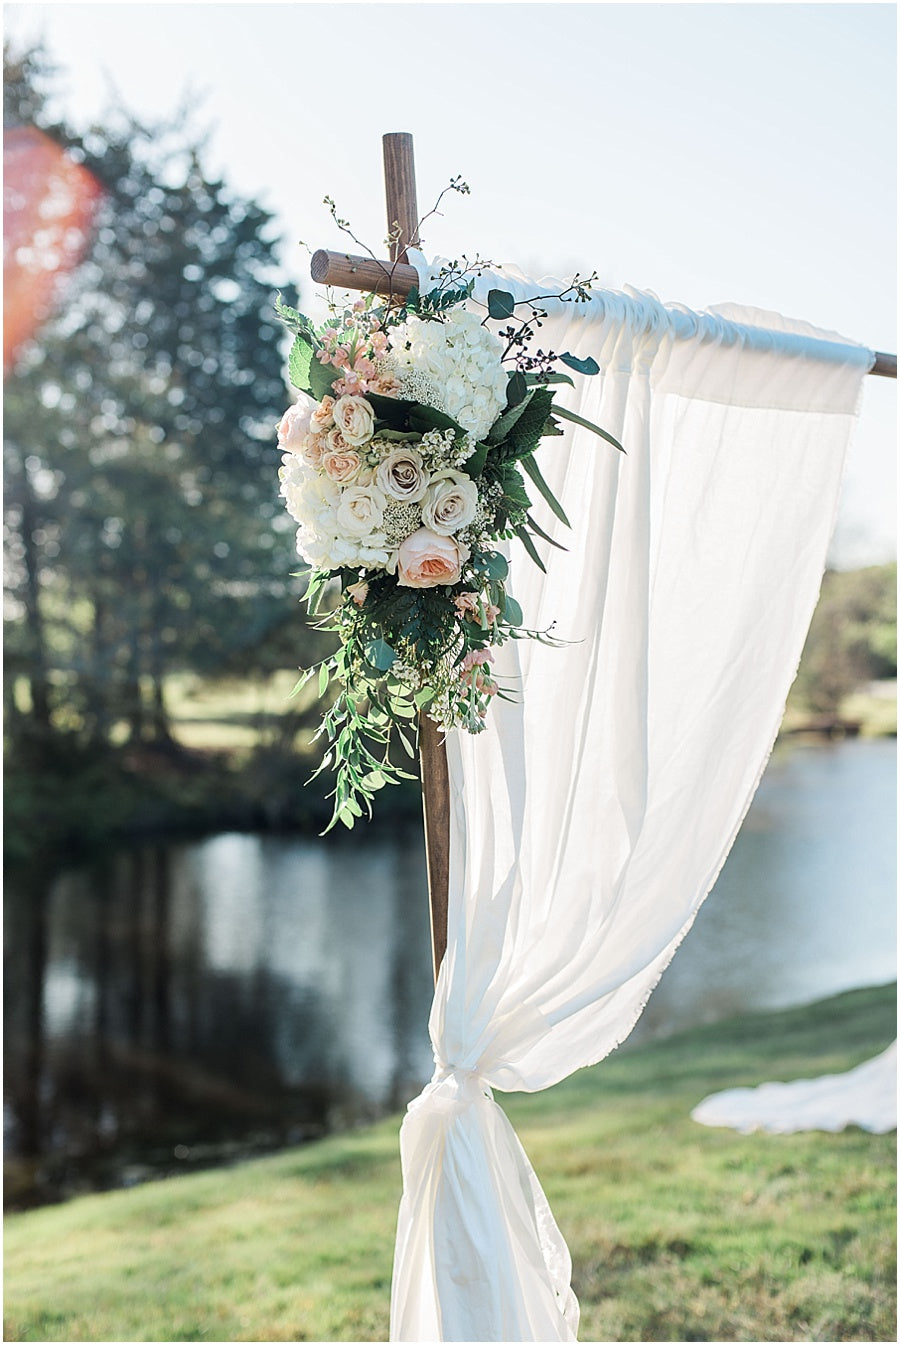 leah adkins photography // little miss lovely floral design // curtain floral ceremony backdrop